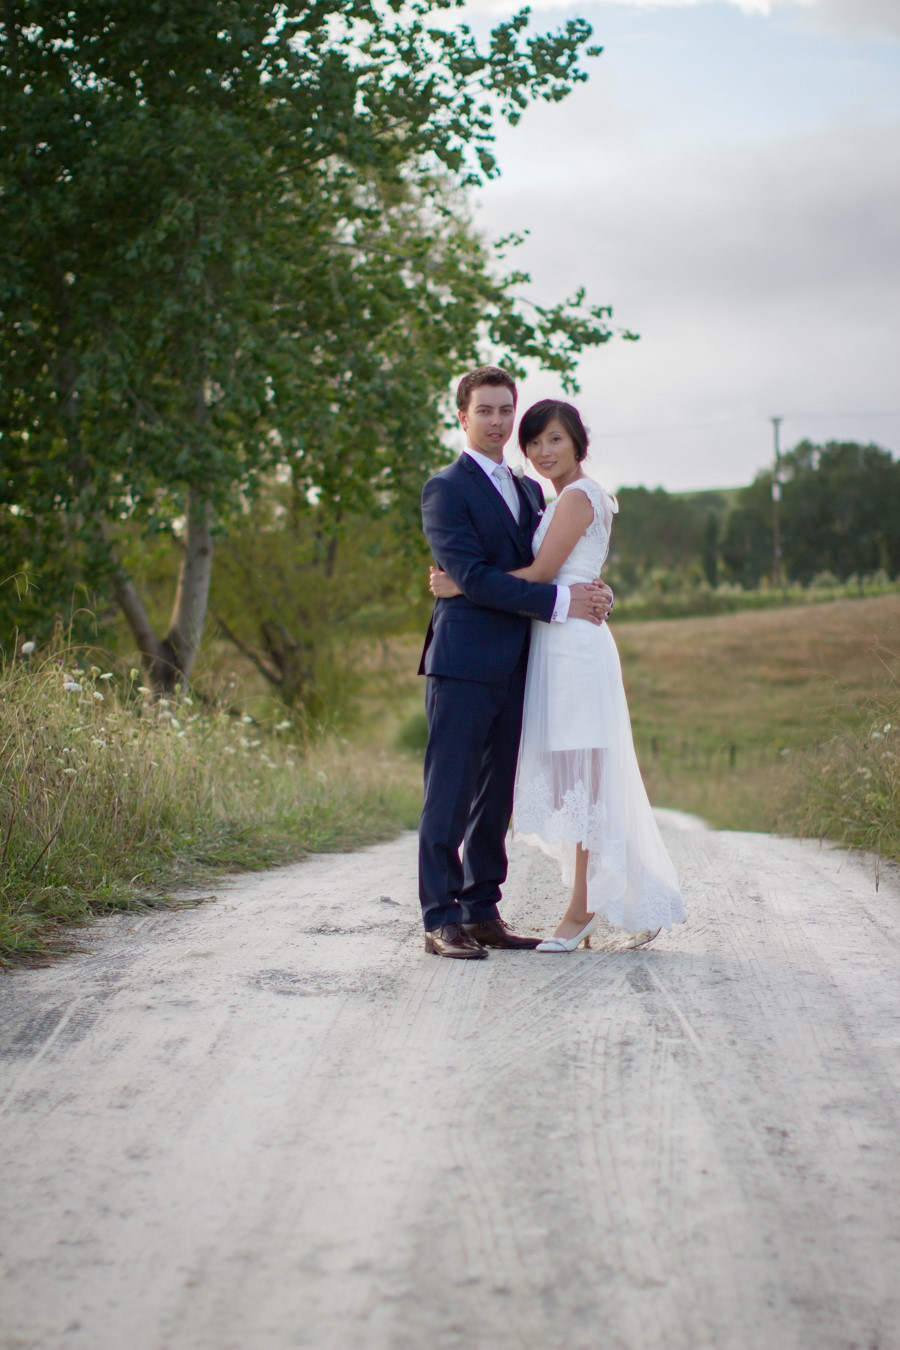 maungaturoto_wedding_nz_photographer_auckland-2229